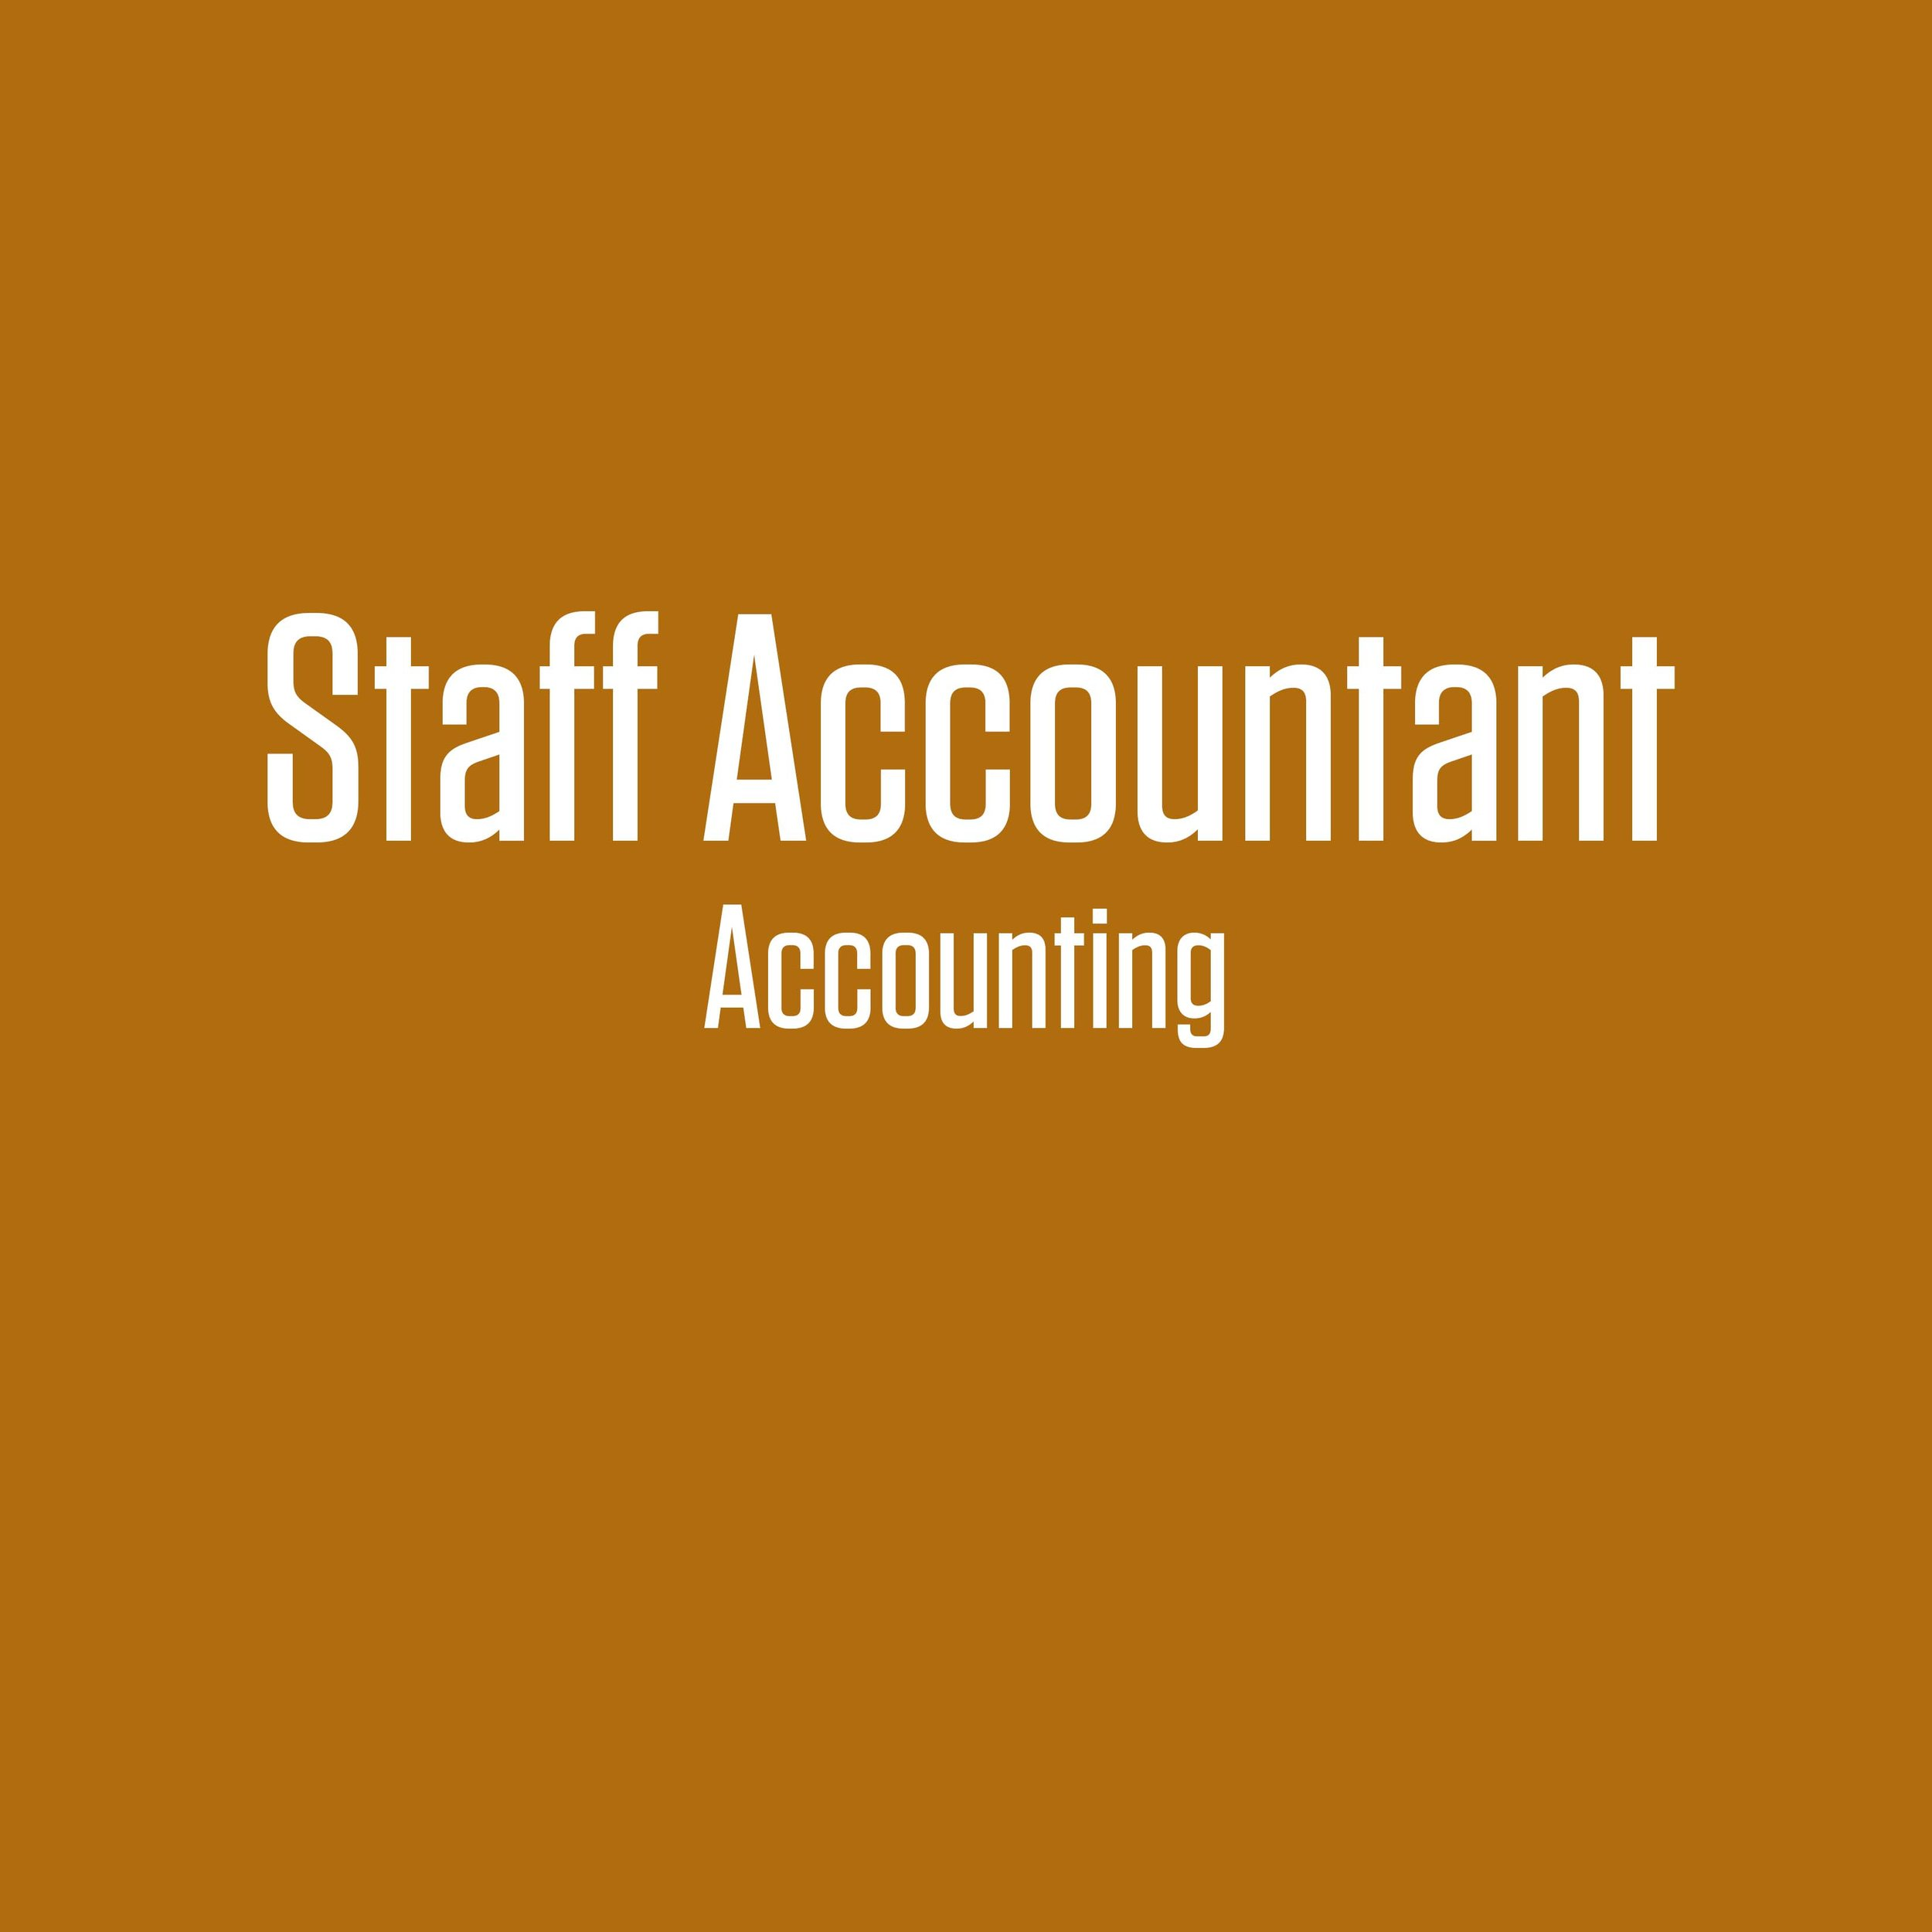 staff accountant.jpg